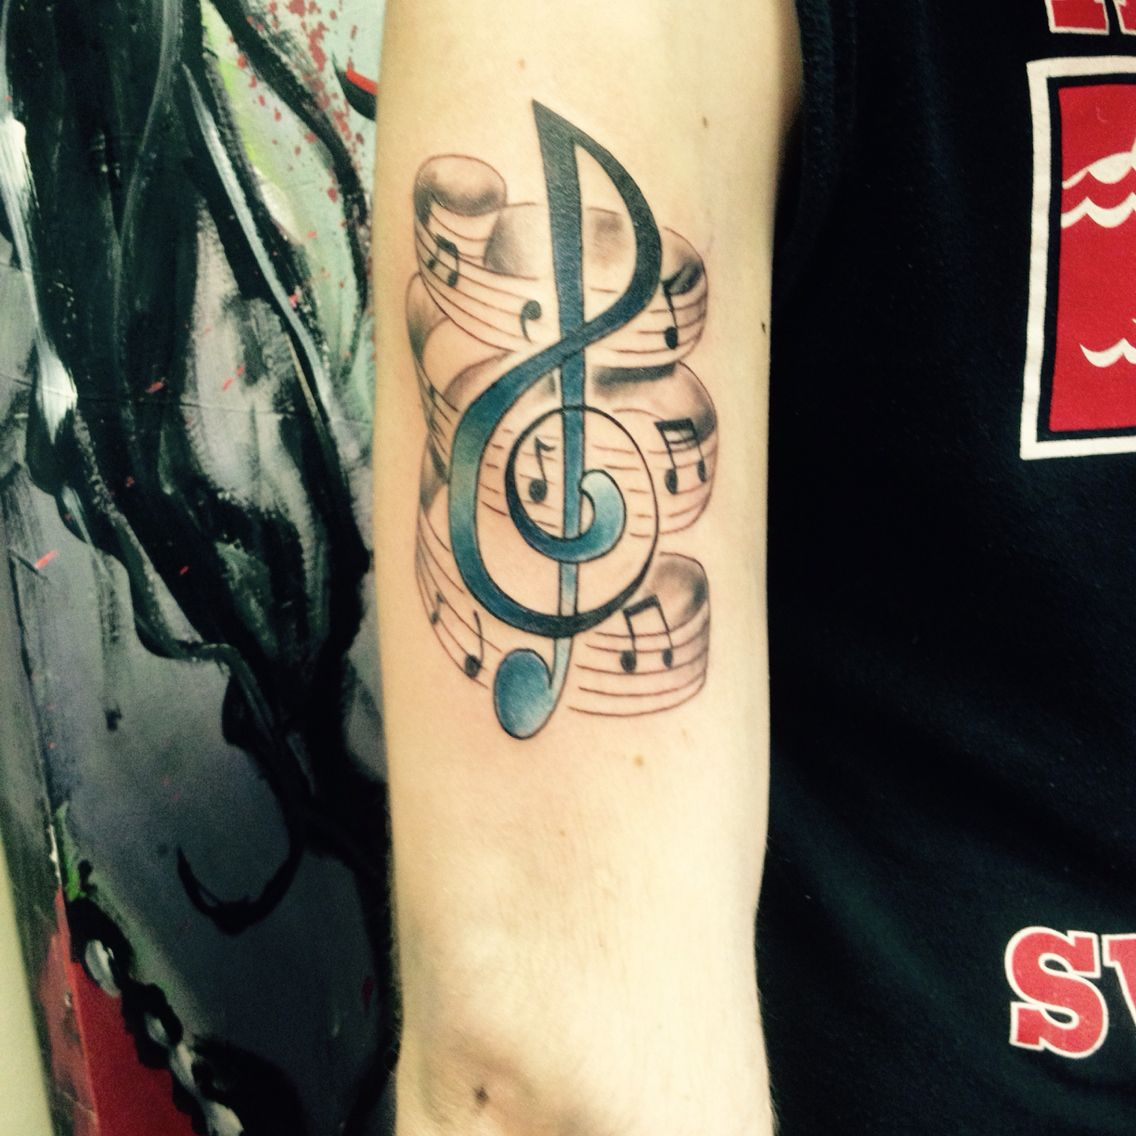 Mu music notes tattoo designs - Music Tattoo Treble Clef Notes And The Staff